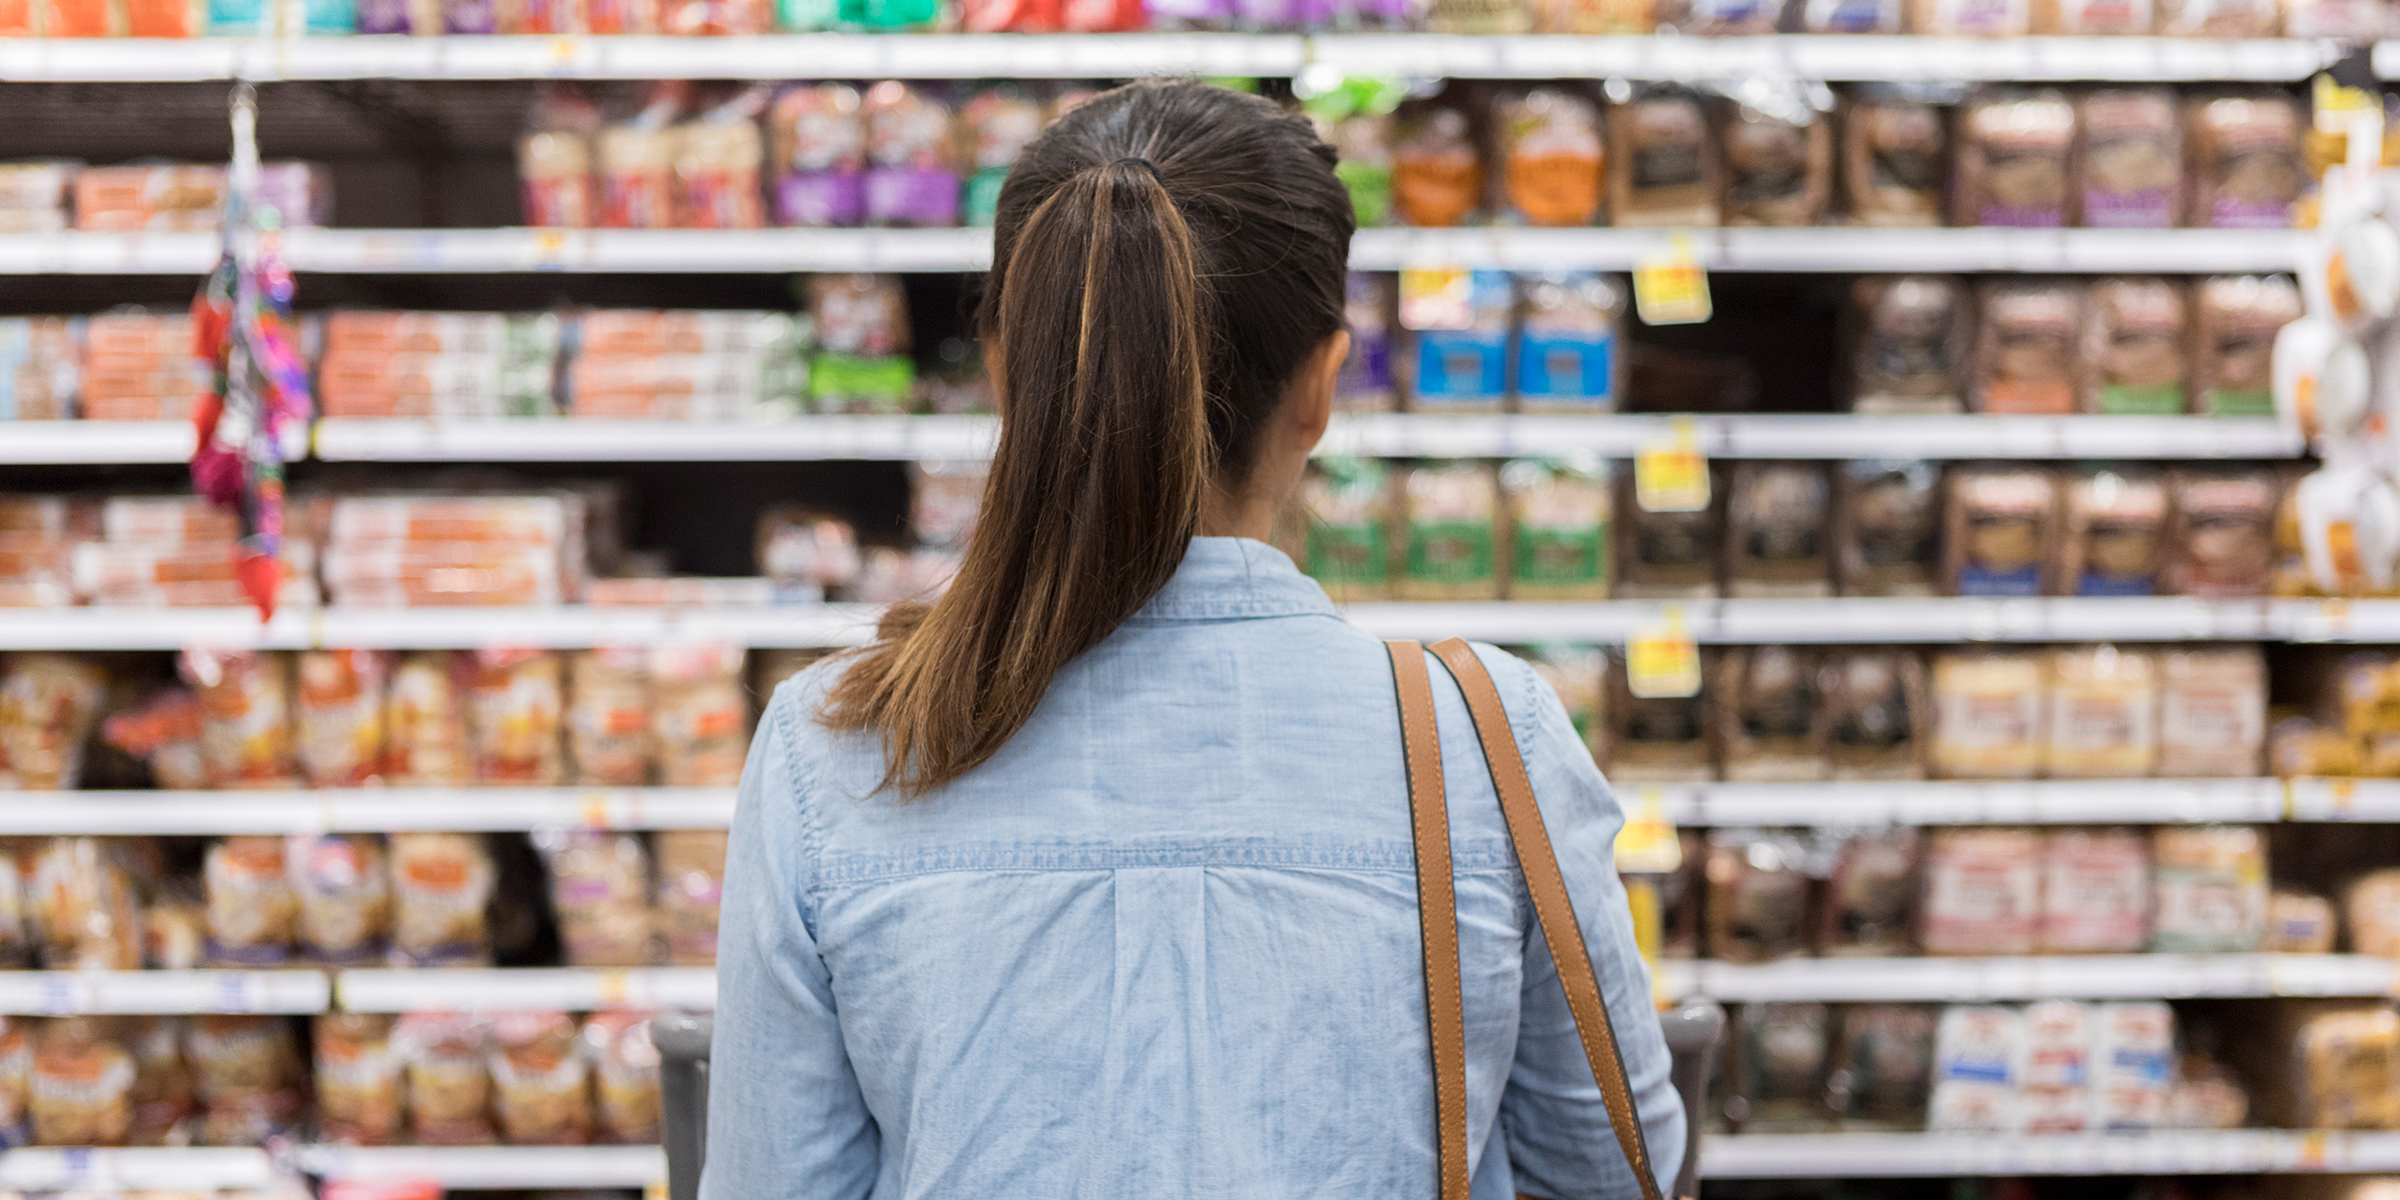 New coupon hacks: 3 easy ways to save money while grocery